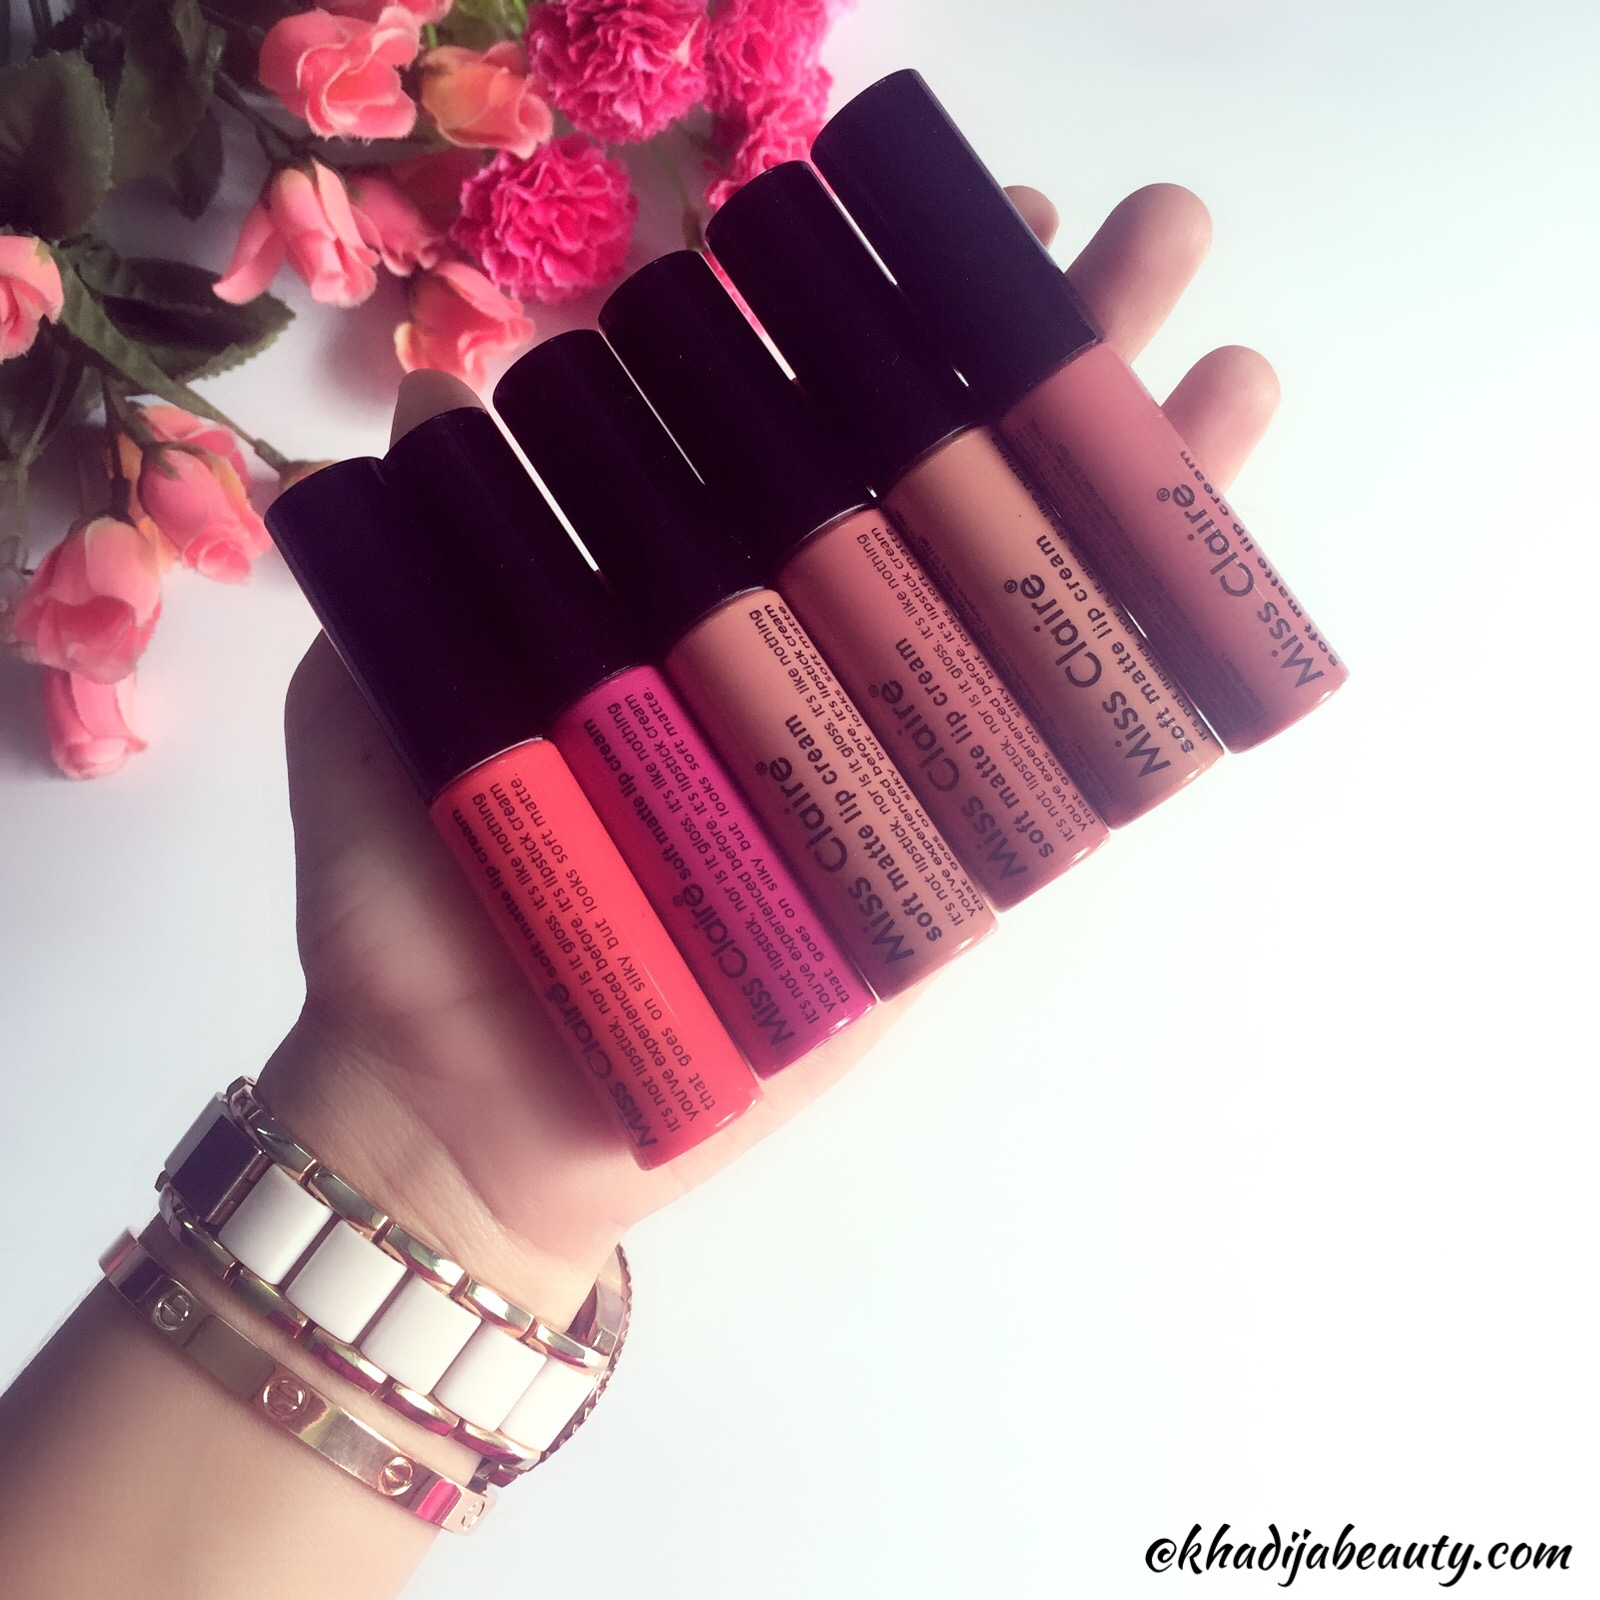 miss claire soft matte lip cream review and swatches, khadija beauty